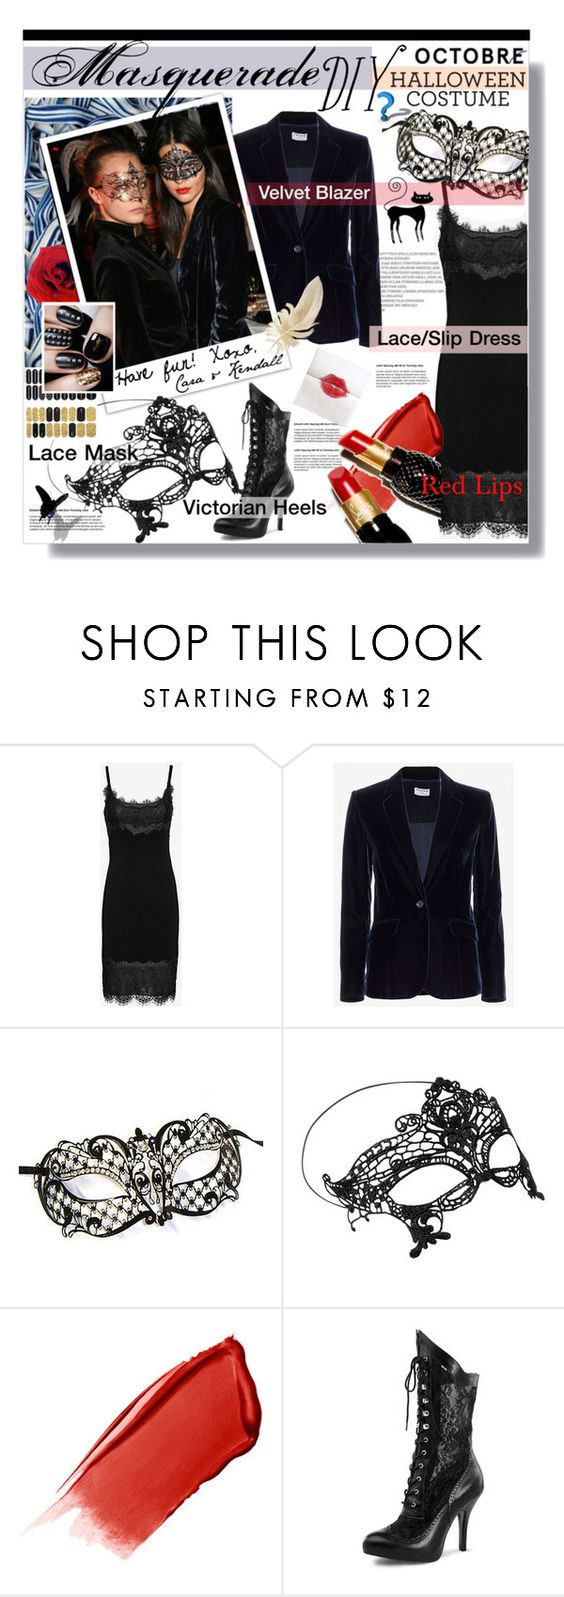 """Masquerade - Halloween Costume"" by watereverysunday ❤ liked on Polyvore featuring Diane Von Furstenberg, Frame Denim, Accessorize, Hourglass Cosmetics, Yves Saint Laurent, Christian Louboutin, cara, kendalljenner, Halloweenparty and diycostume"